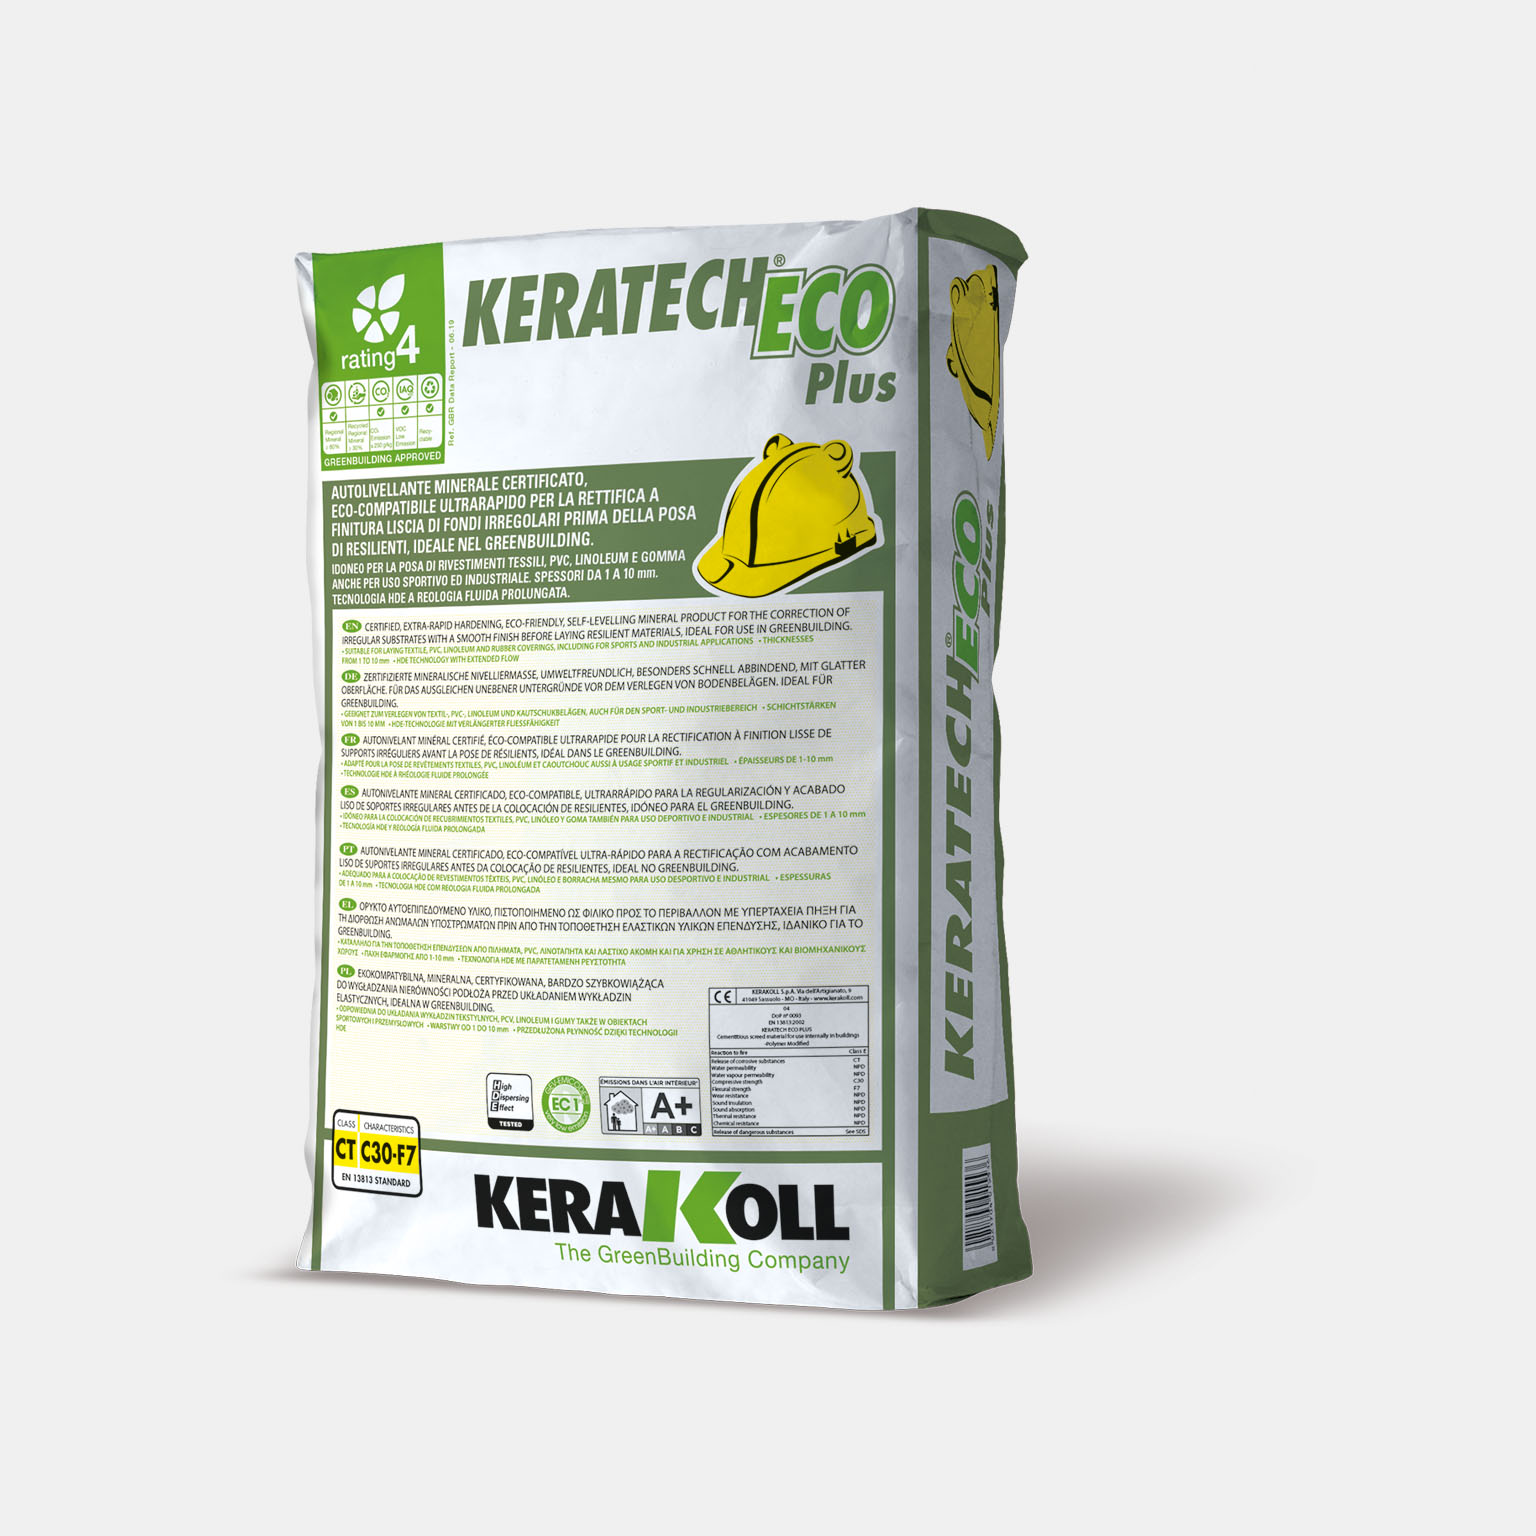 Keratech Eco Plus - immagine pack